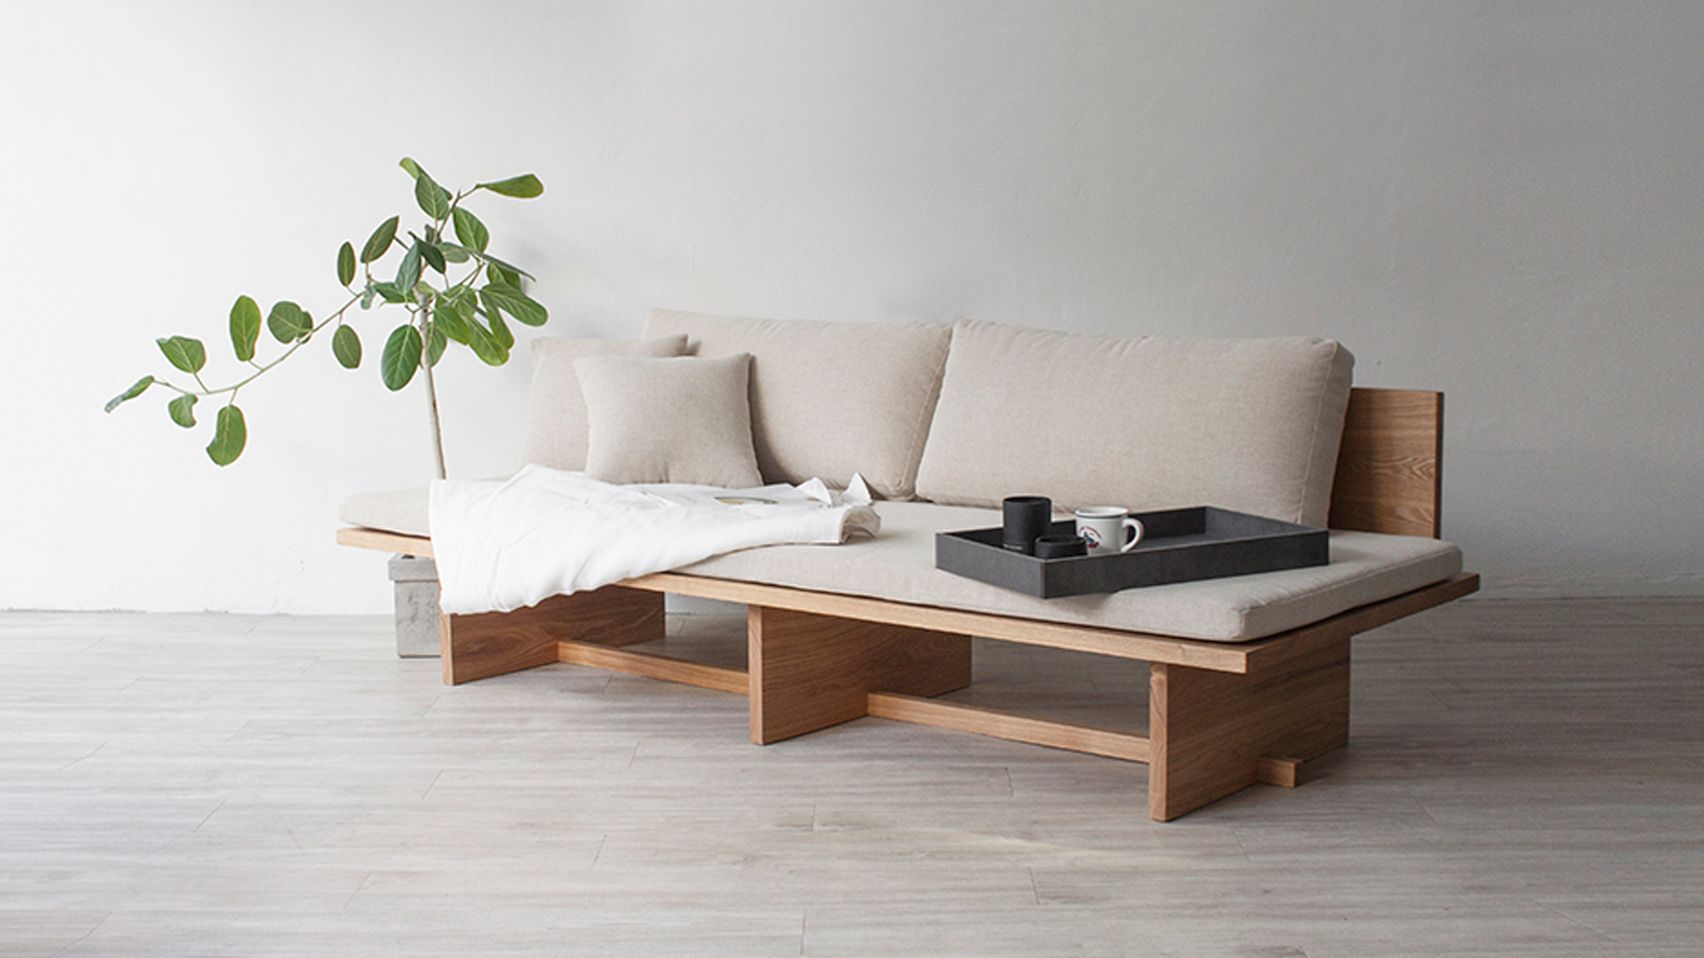 Hyung suk cho updates traditional korean elements for blank daybed